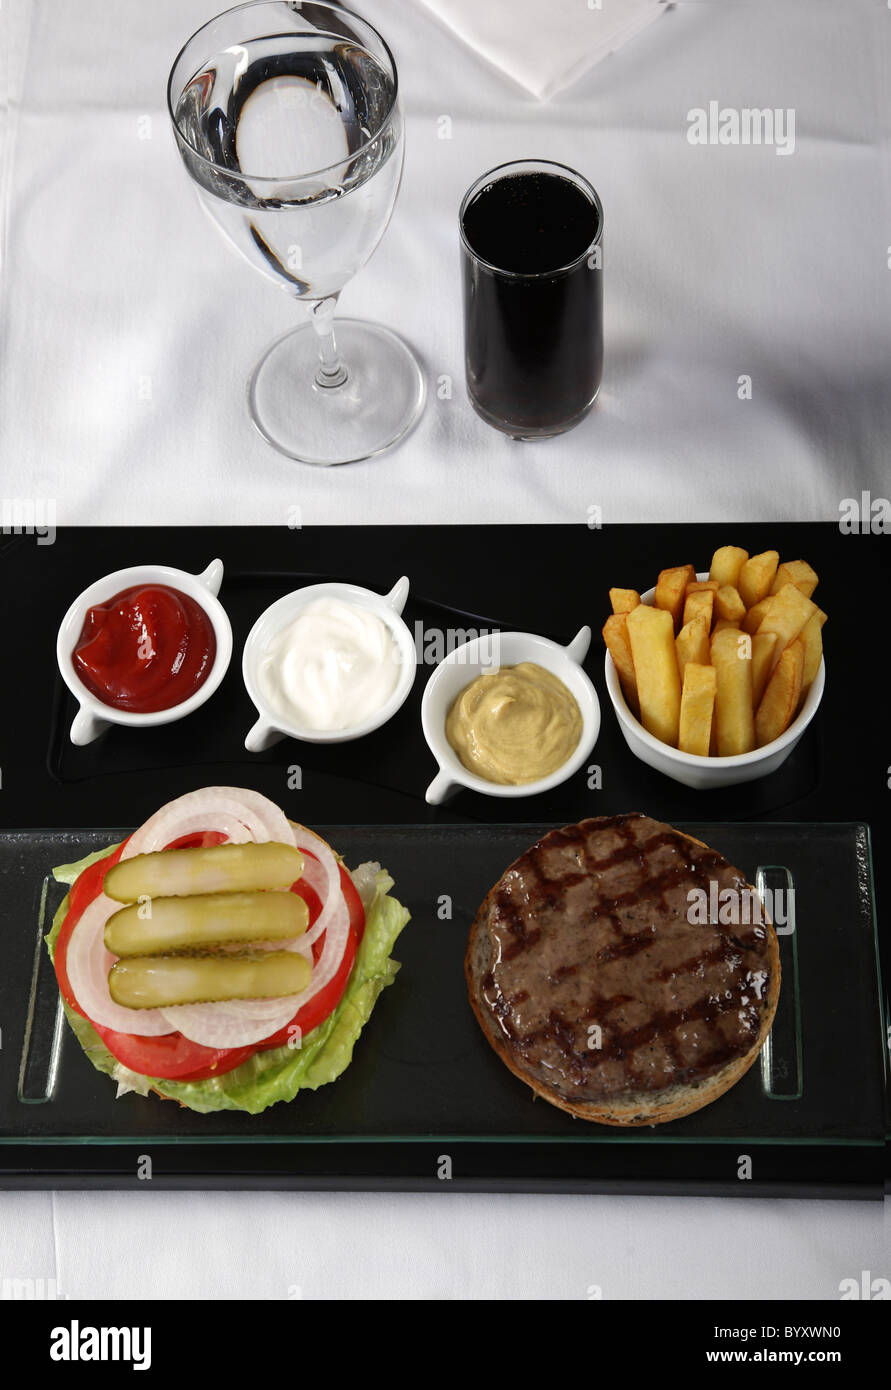 Burger and french fries served on a classic table Stock Photo